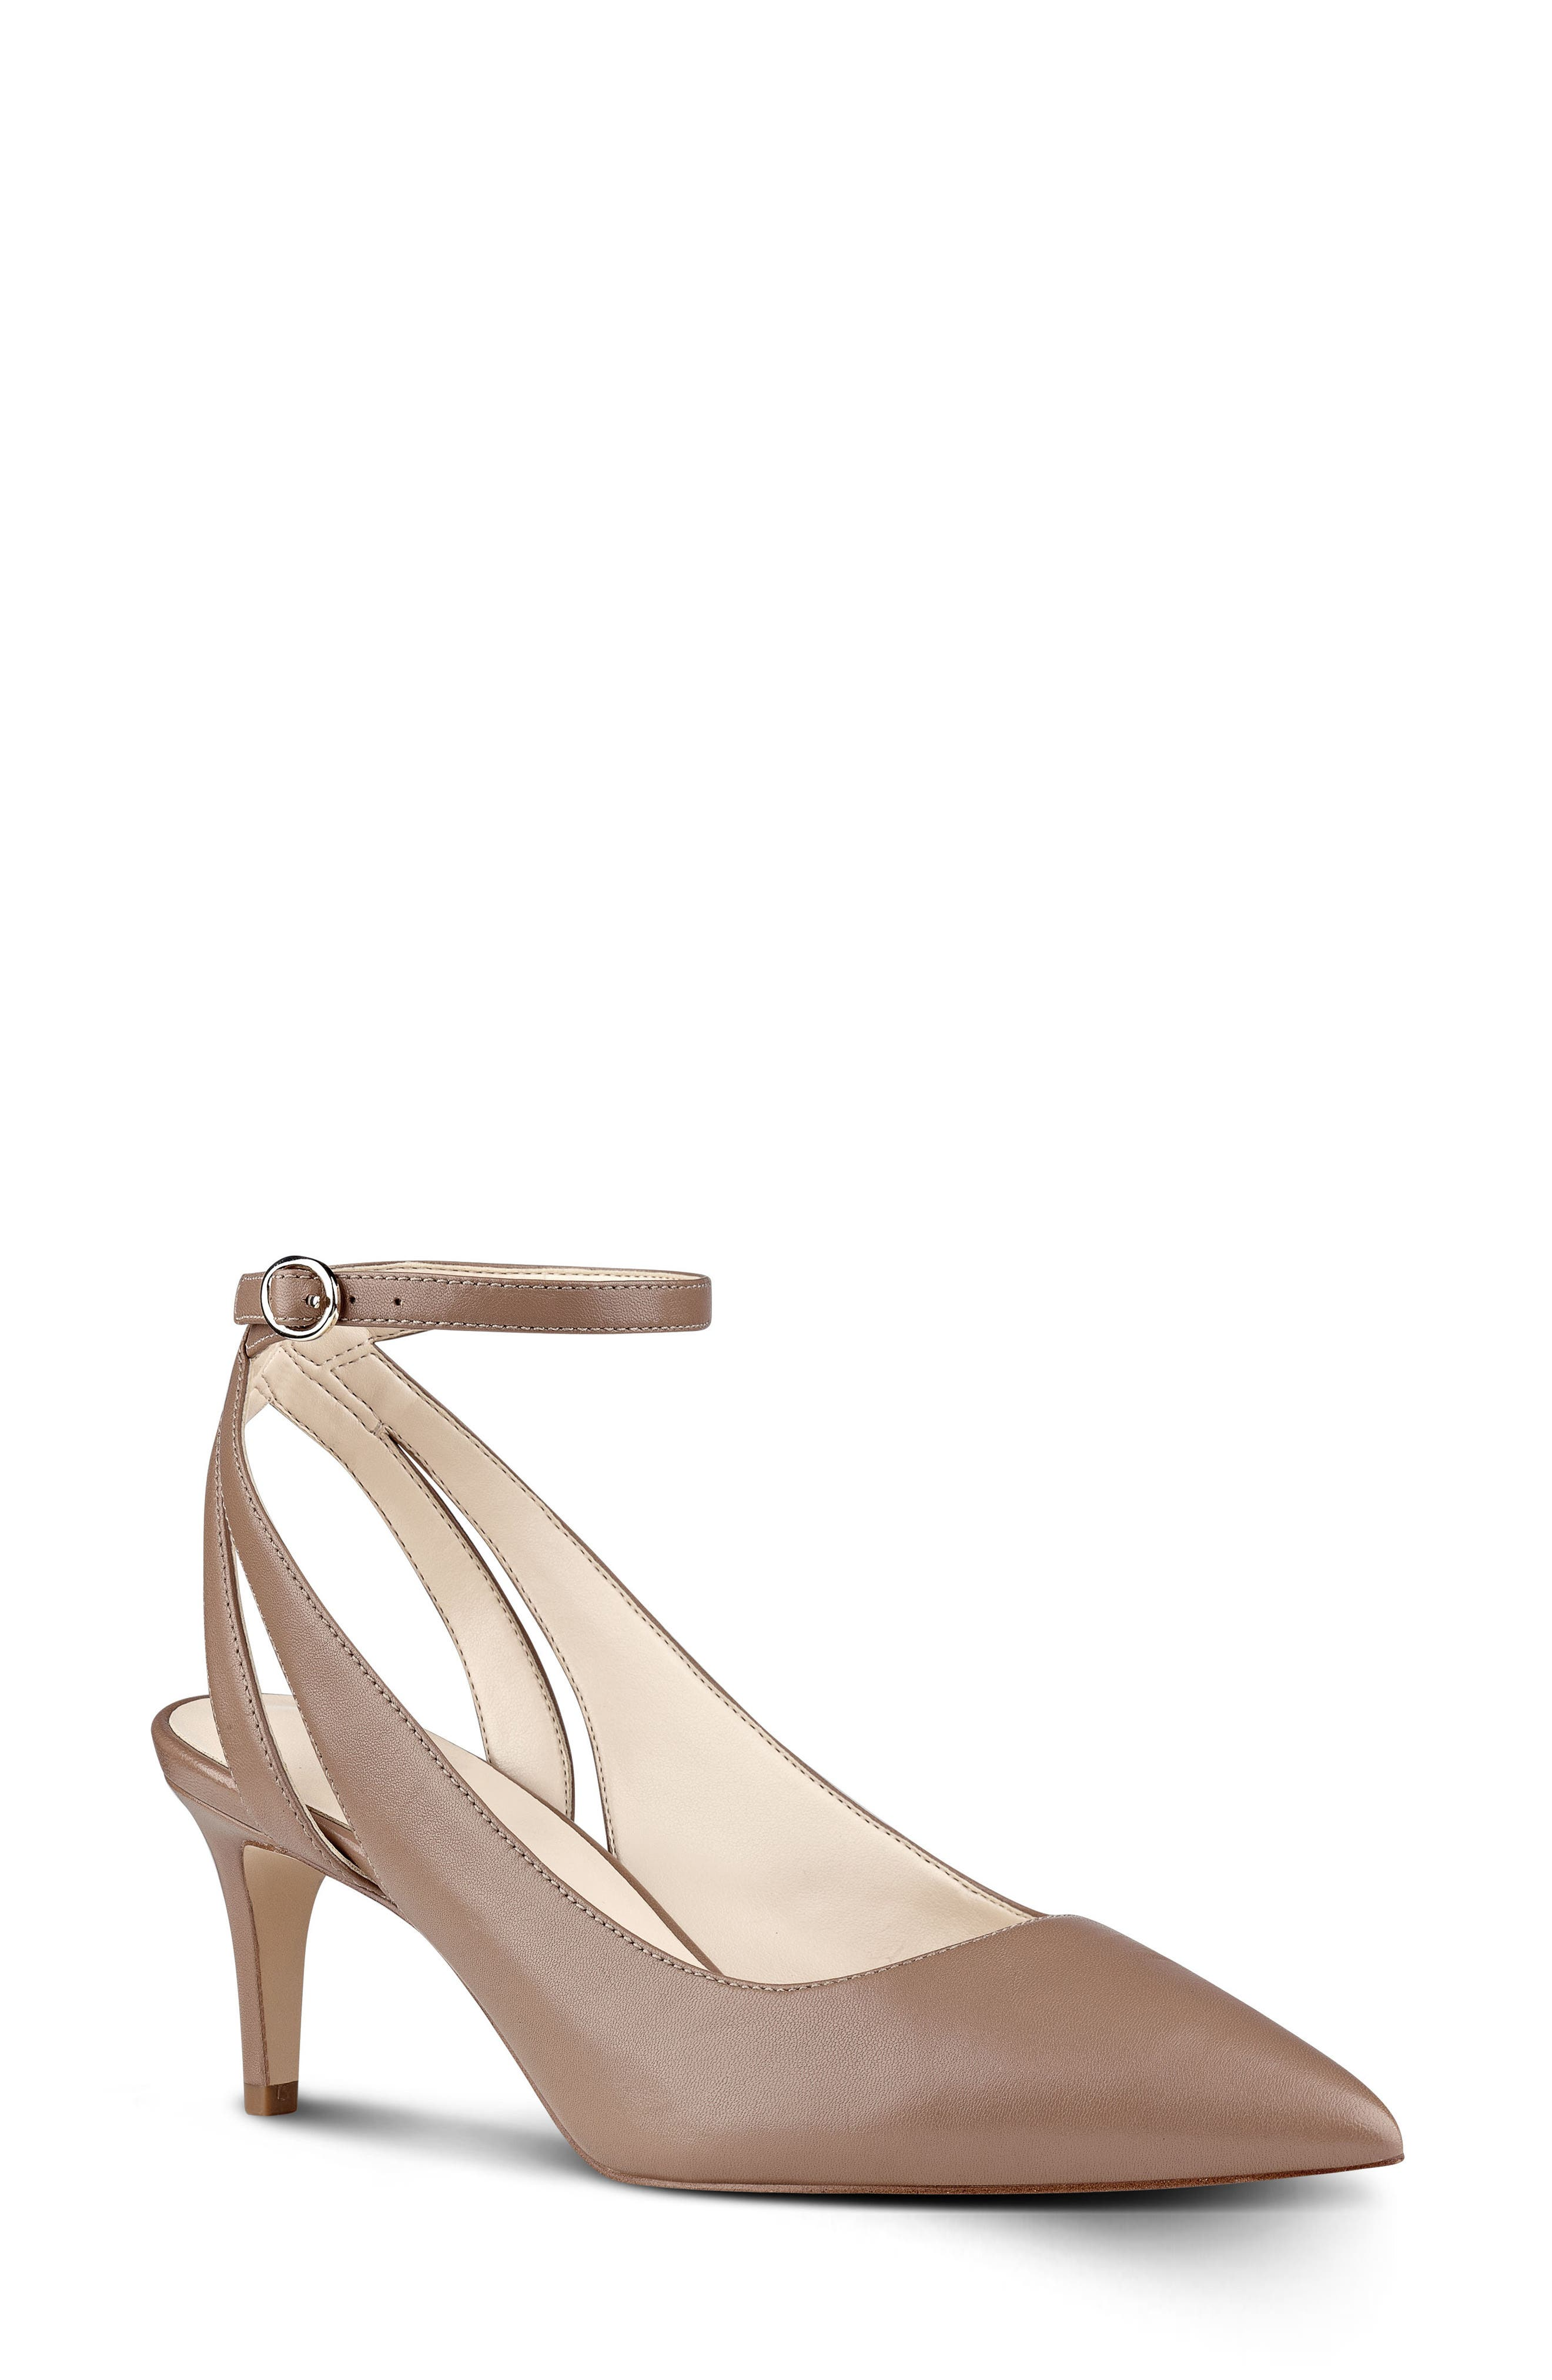 Shawn Ankle Strap Pump,                         Main,                         color, Natural Leather